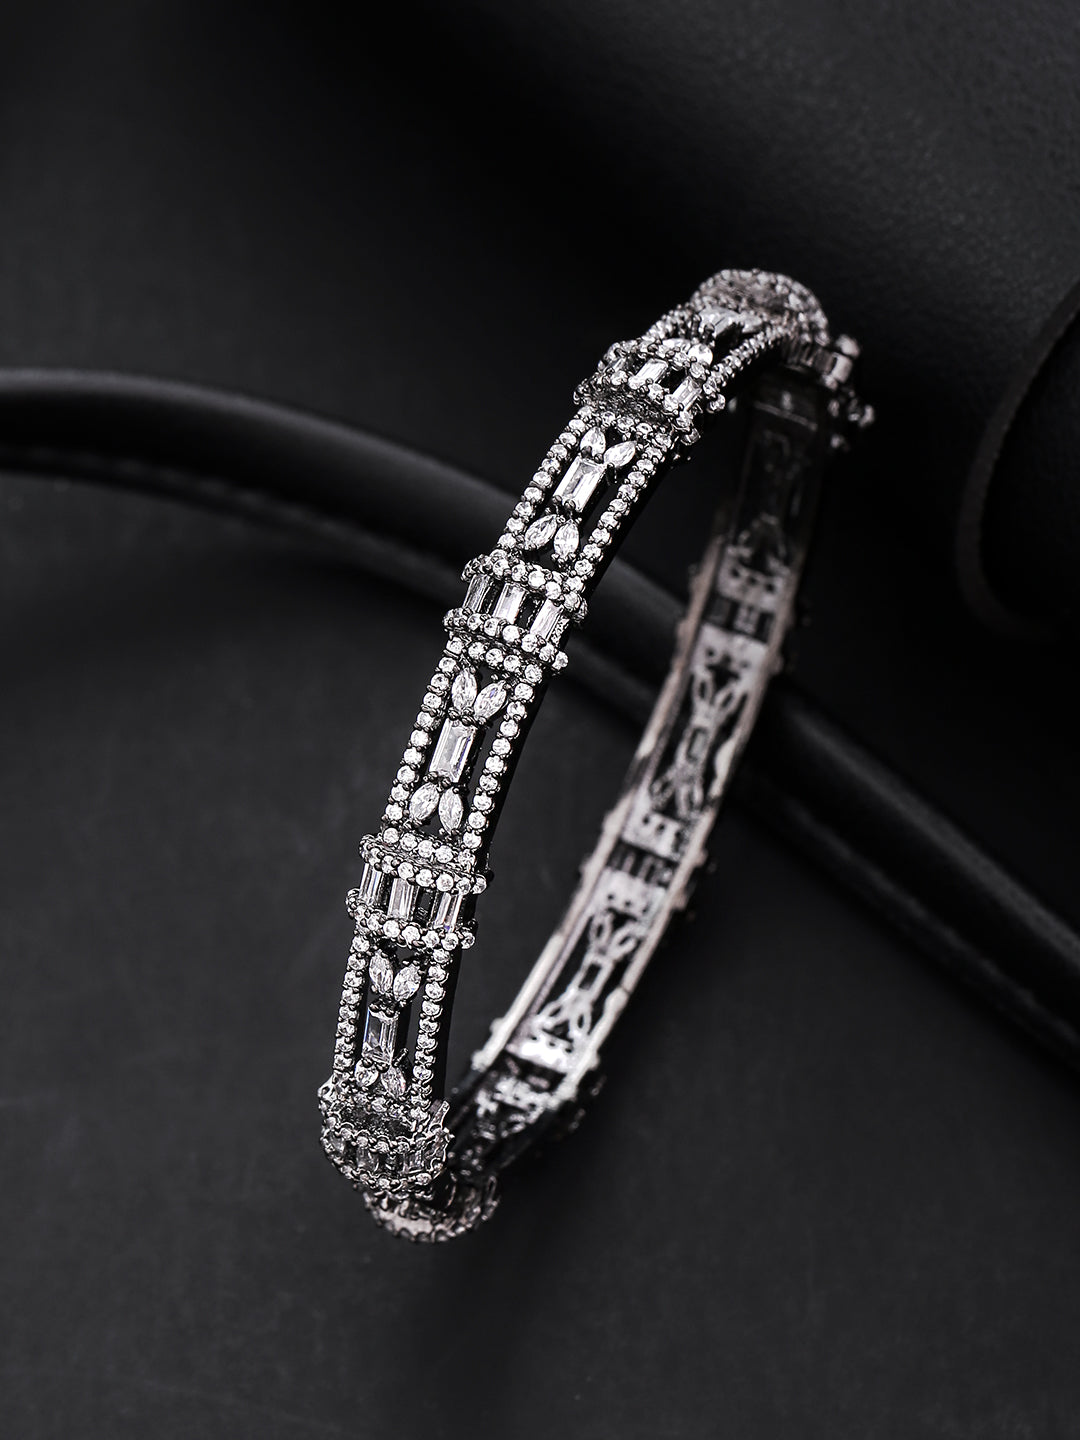 Gunmetal-Plated American Diamond Studded Bracelet